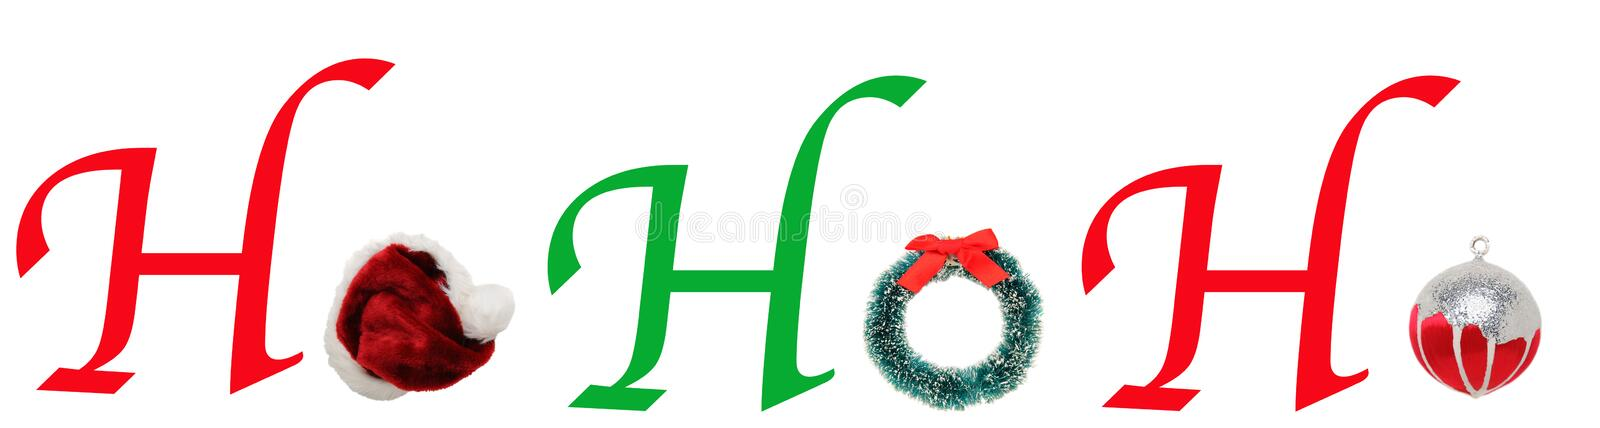 HoHoHo with Christmas Wreath, Hat, ornament vector illustration